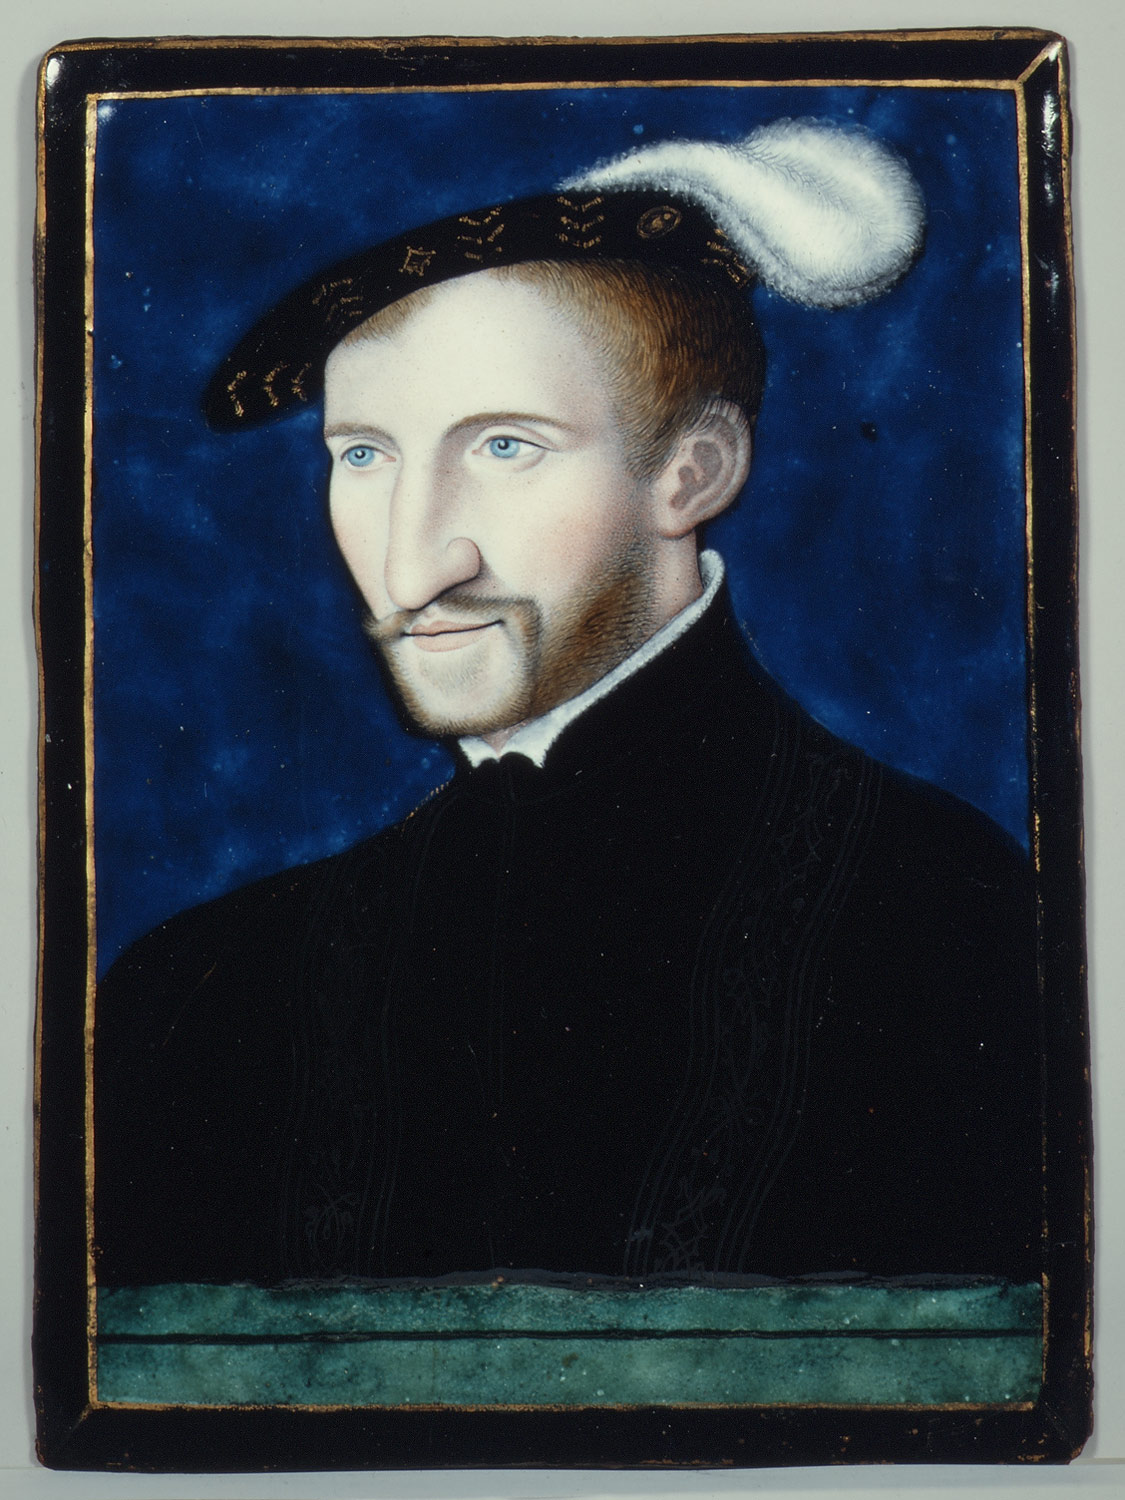 Henri dAlbret (1503-1555), King of Navarre